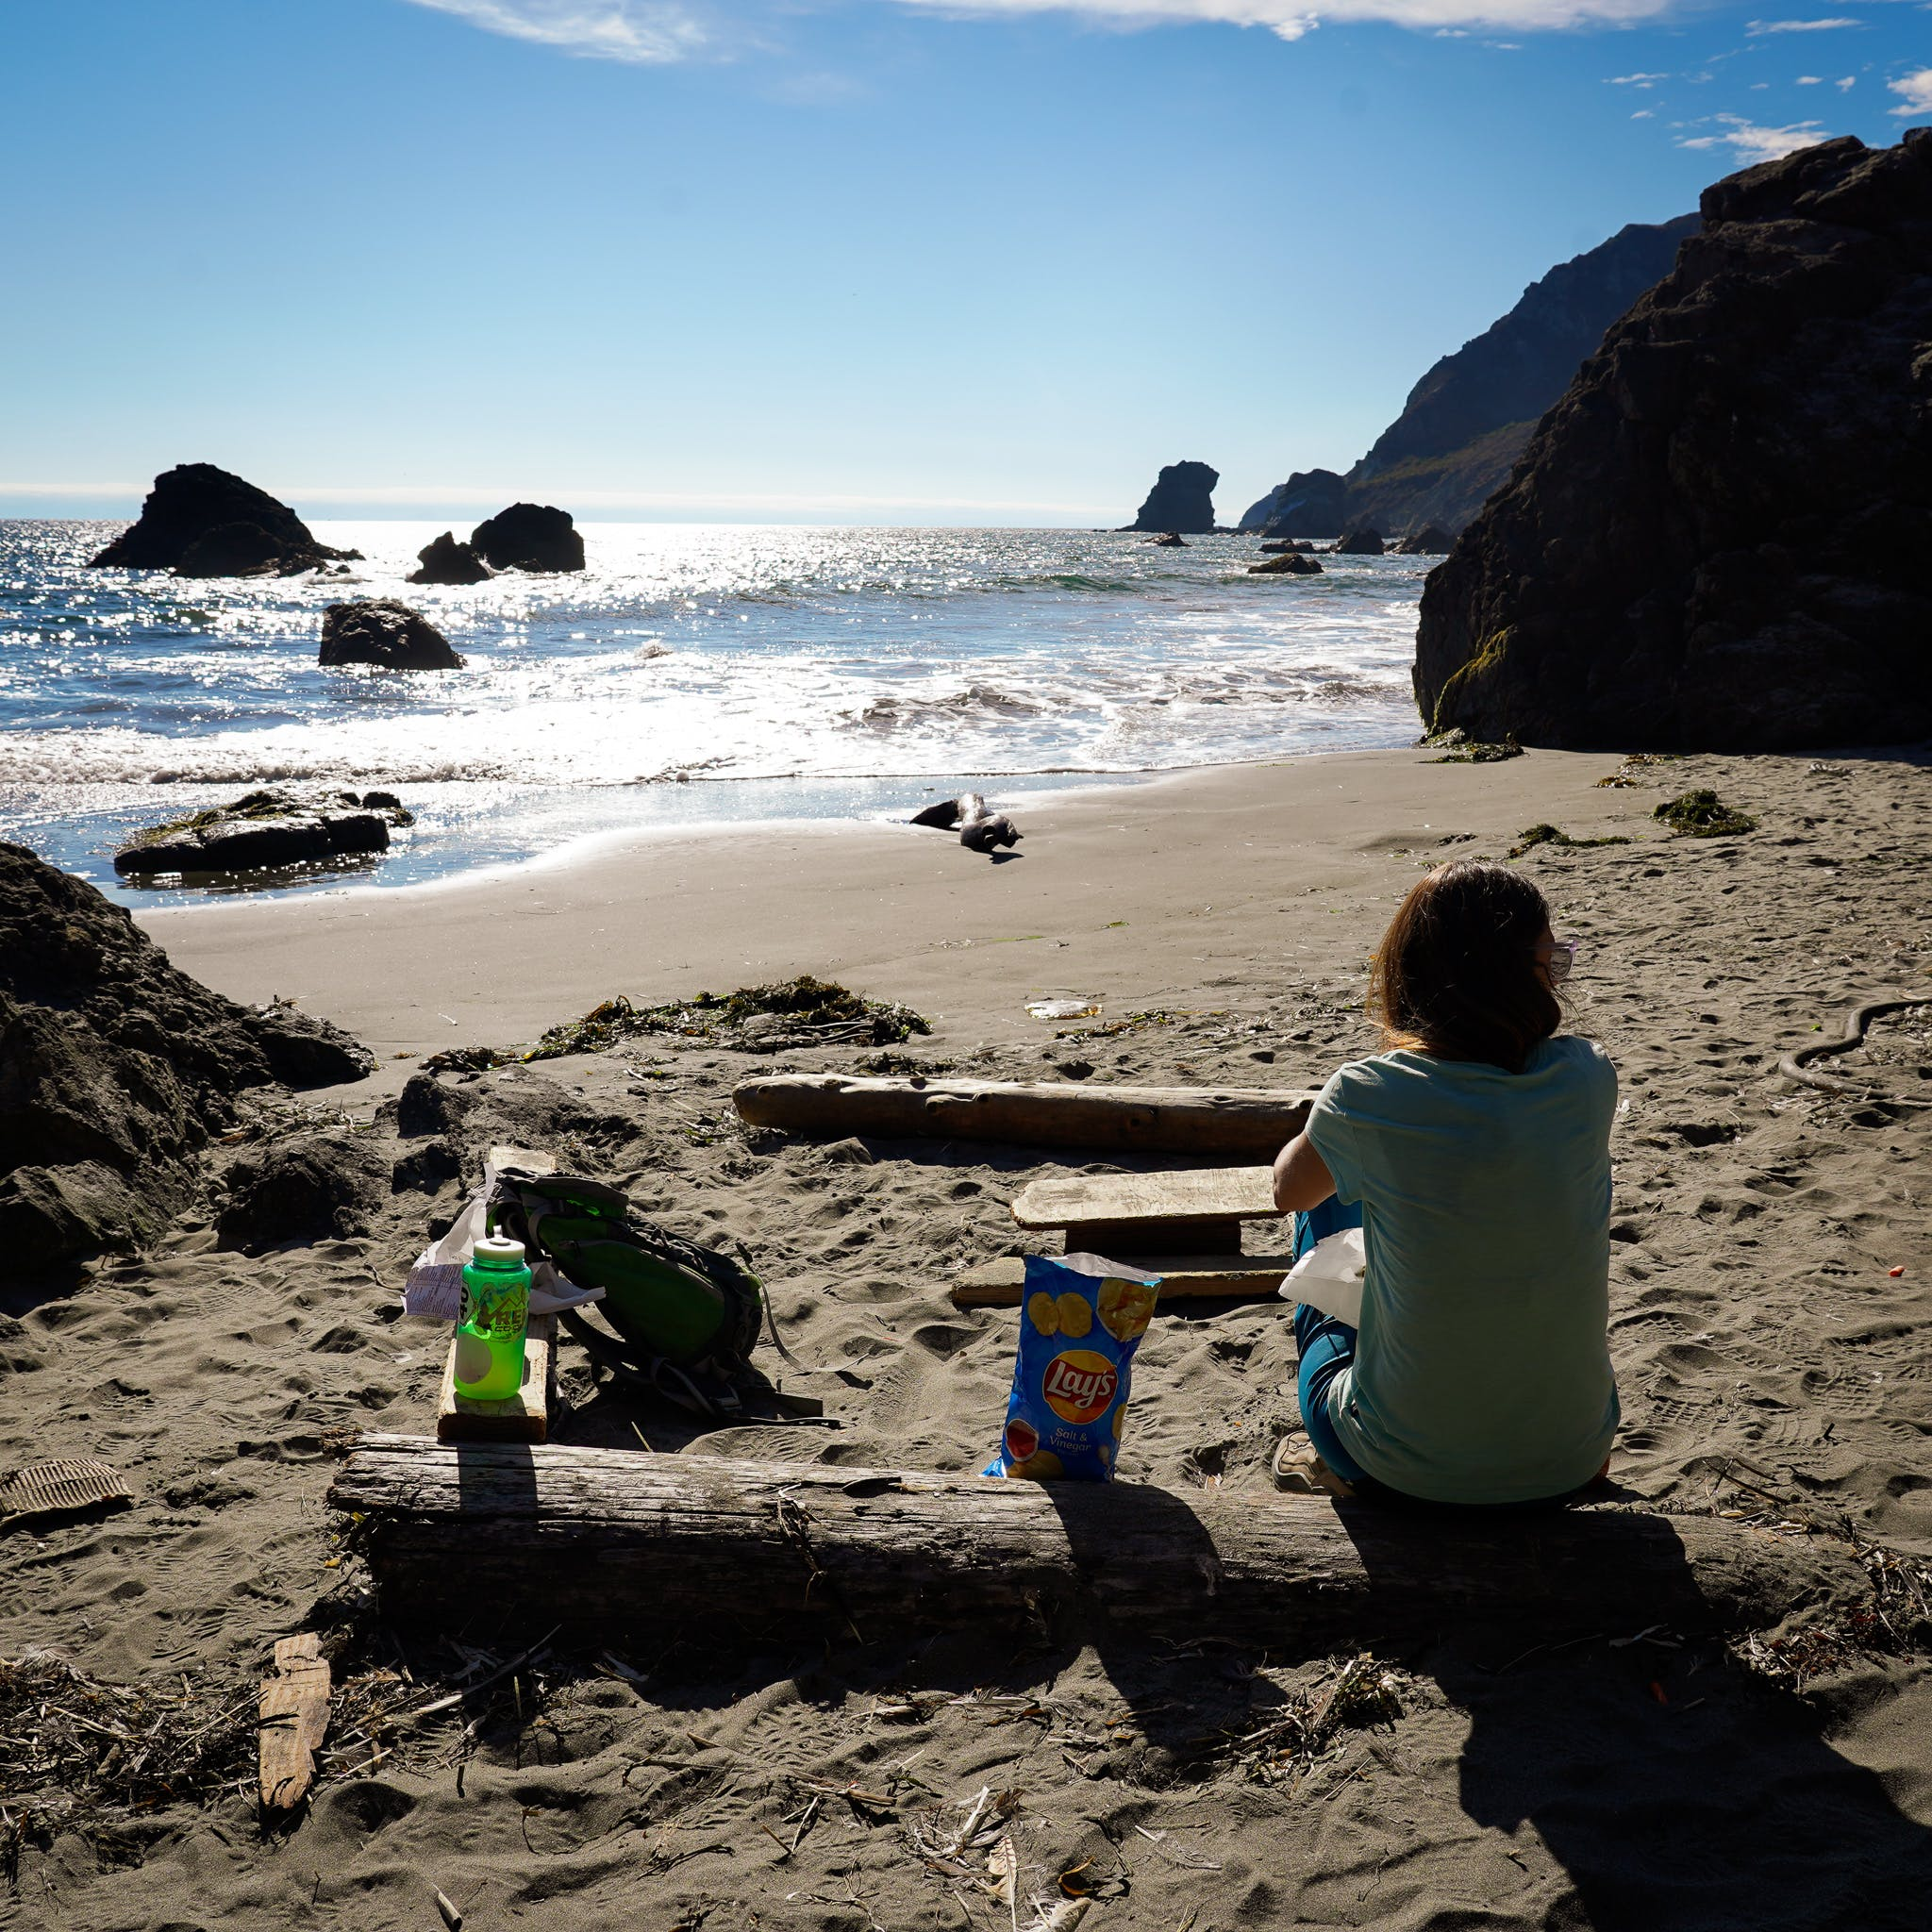 Woman sitting on driftwood and looking out to the ocean at Pirates Cove hike-in beach in the Marin Headlands